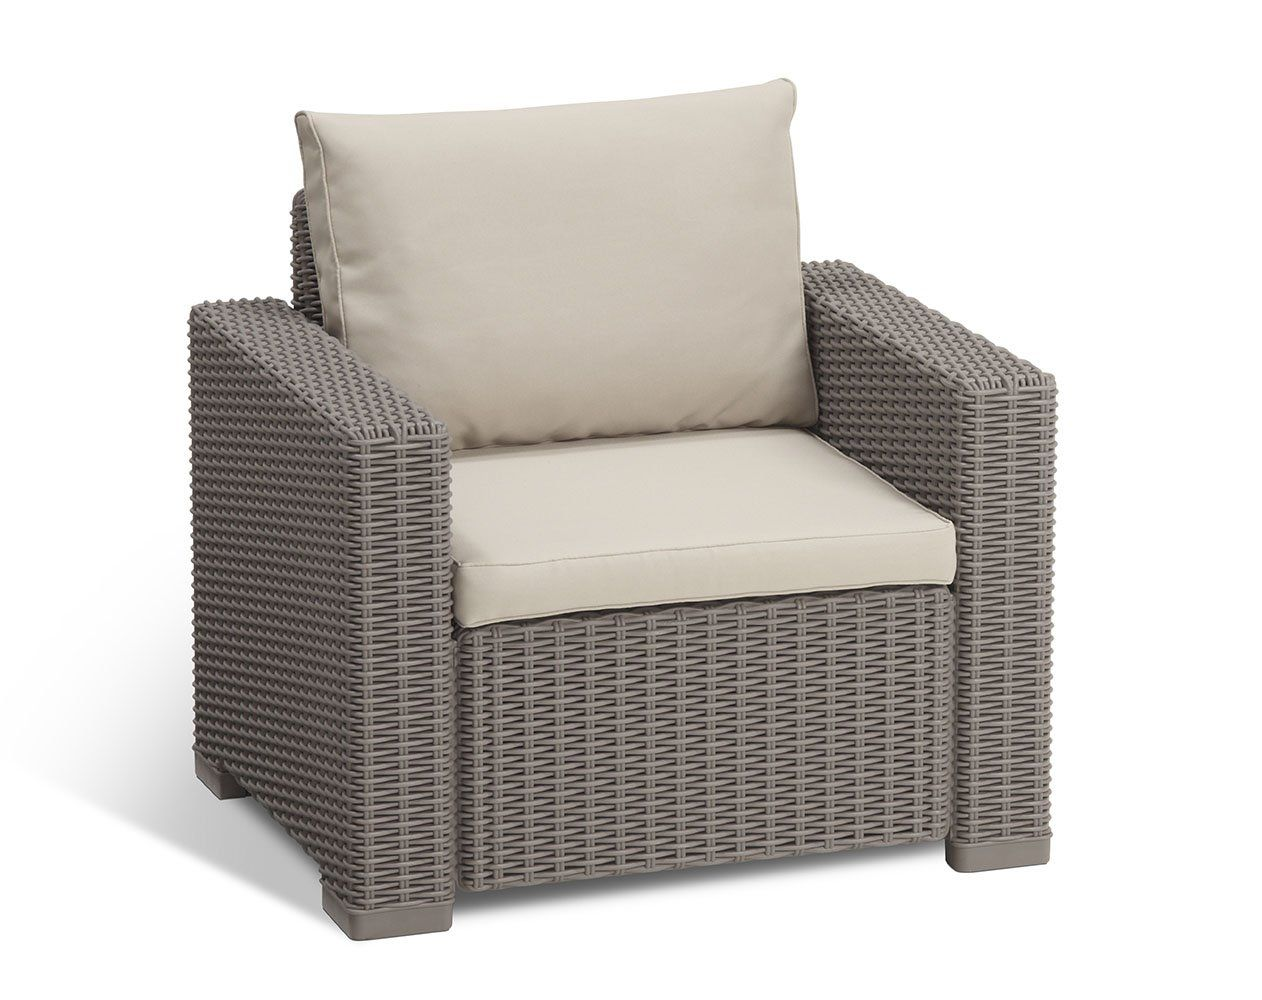 Keter California All Weather Outdoor Patio Armchair With Cushions In A Resin Plastic Wicker Pattern Cap Lounge Chair Outdoor Garden Furniture Sets Patio Chairs